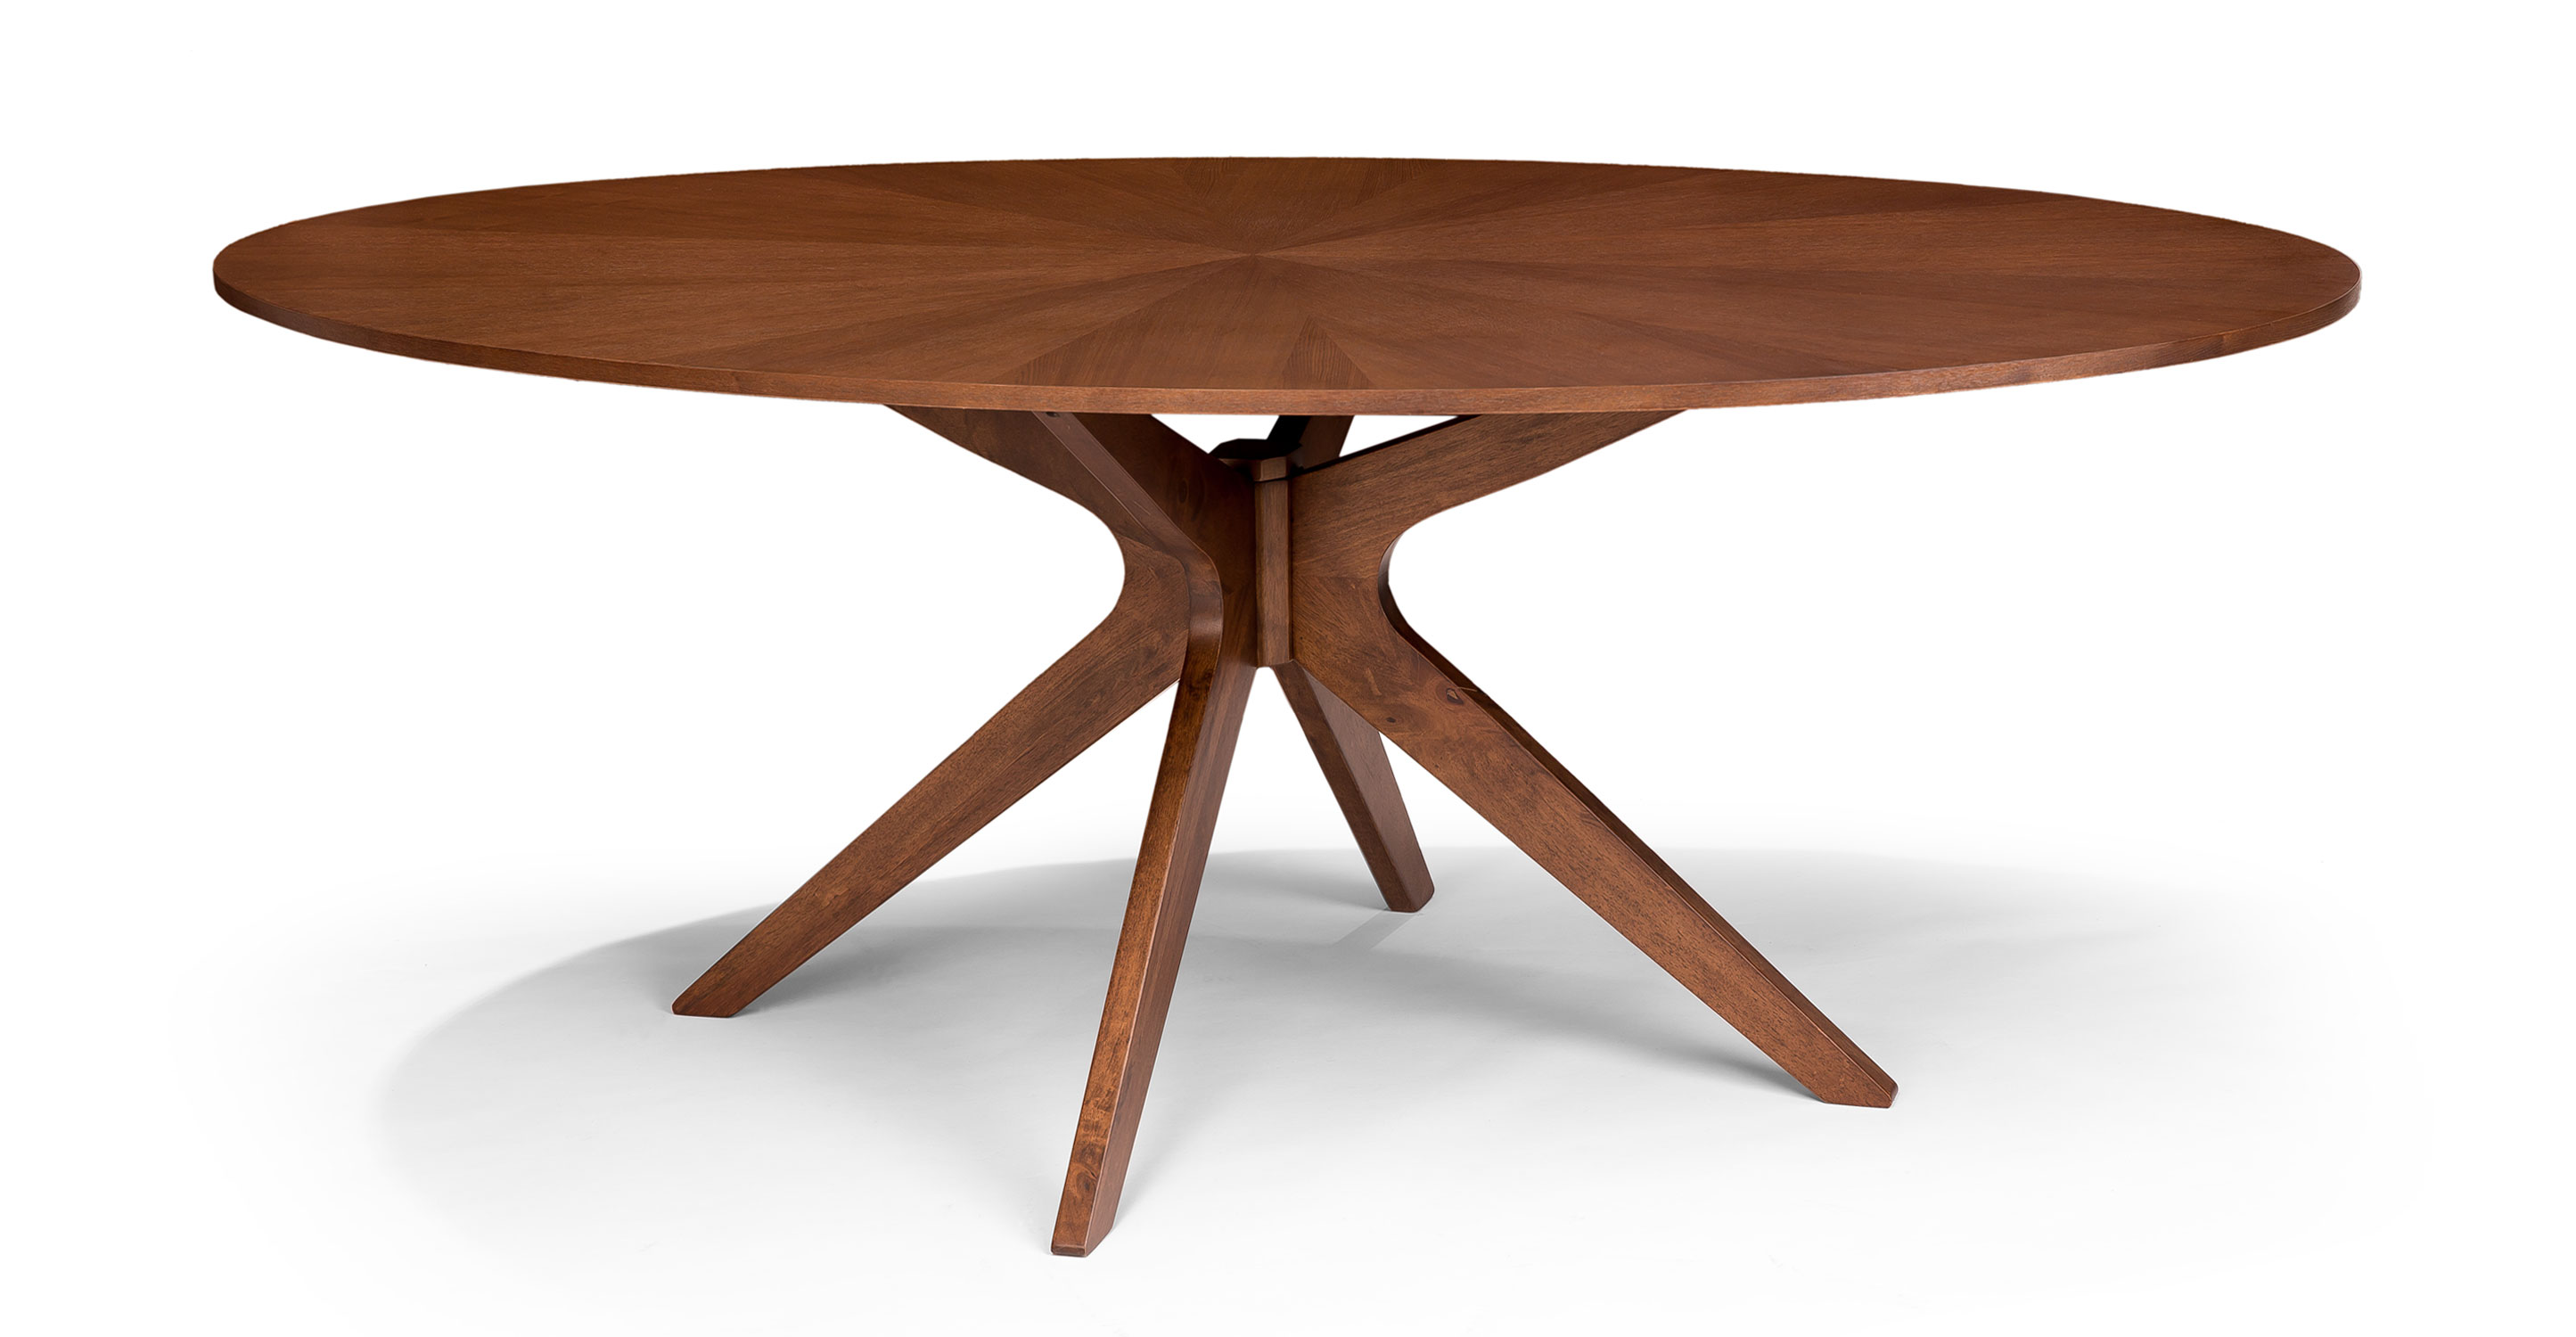 Awesome Conan Oval Dining Table - Dining Tables - Article | Modern, Mid-Century wood oval dining table